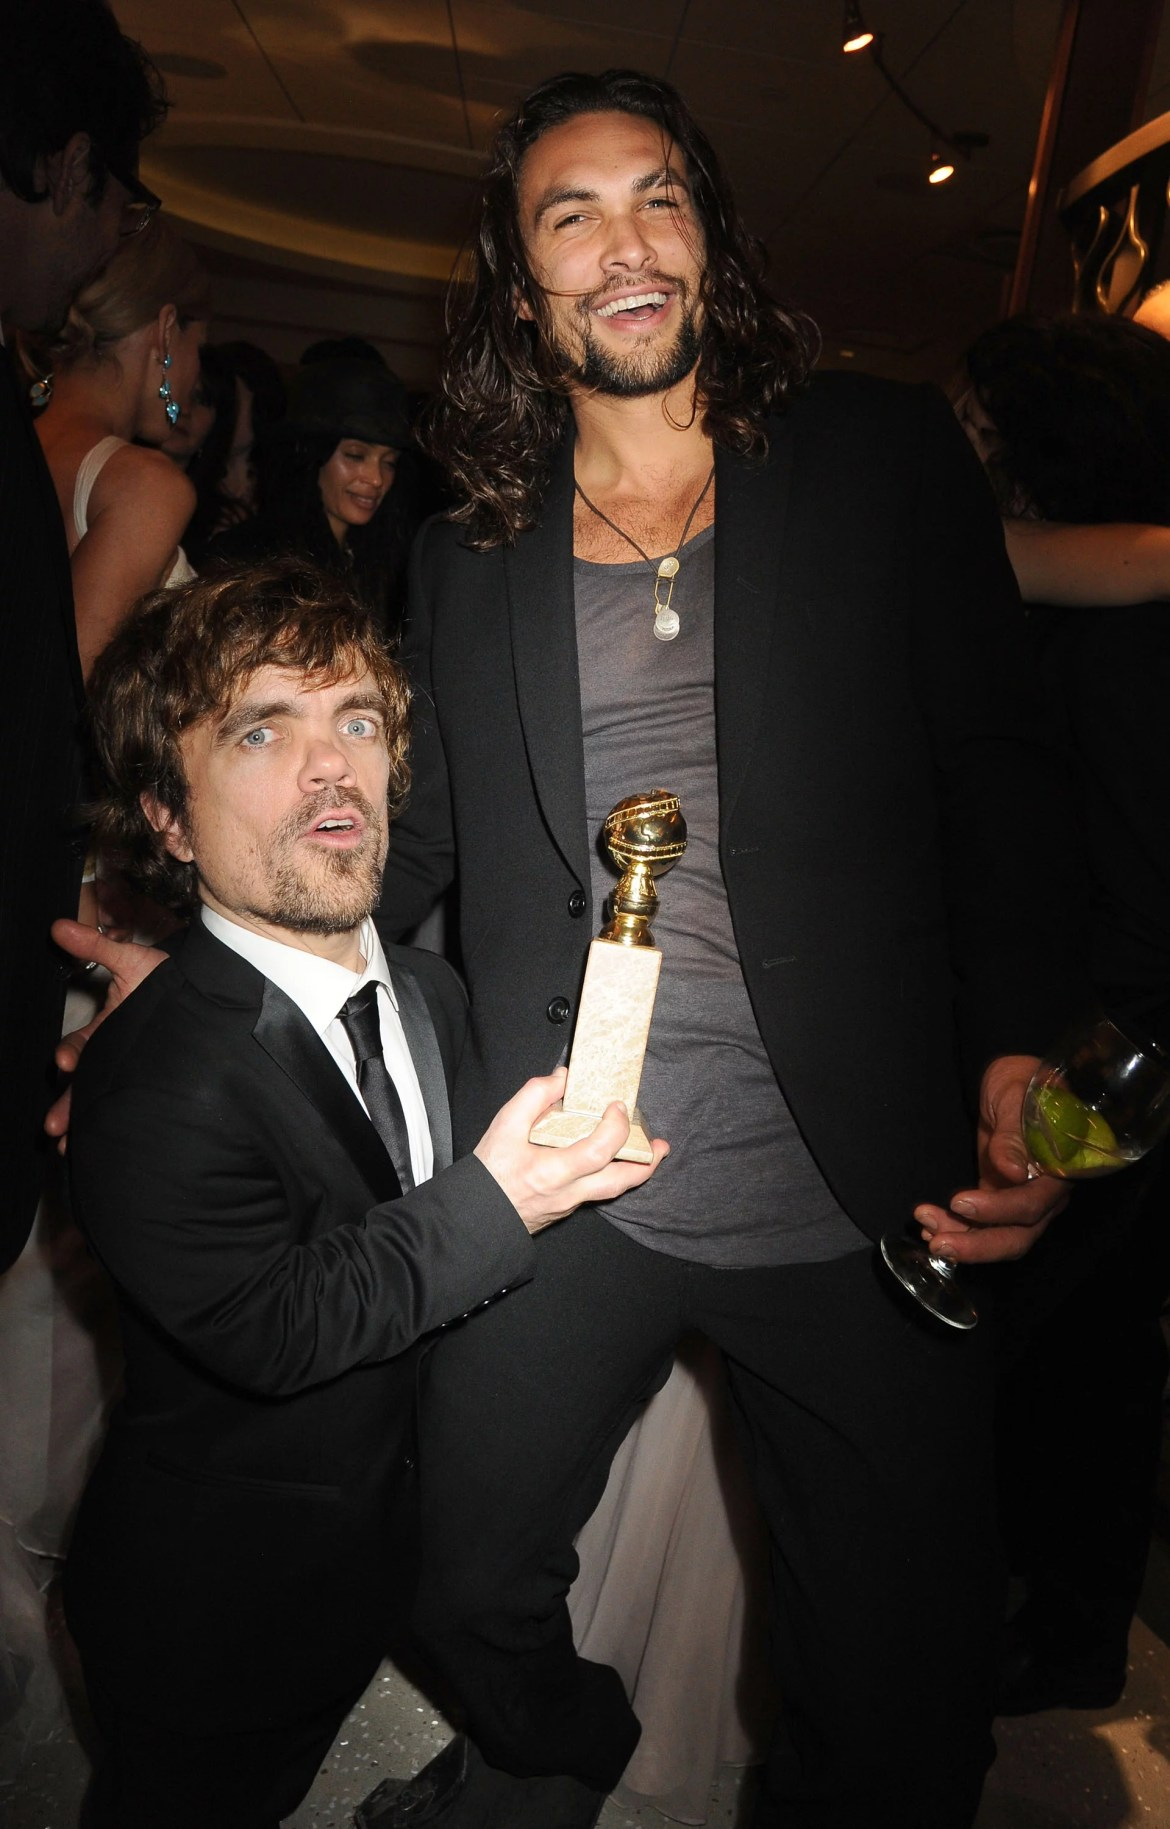 BEVERLY HILLS, CA - JANUARY 15:(EXCLUSIVE COVERAGE)   Actors Peter Dinklage and Jason Momoa attends HBO's Official After Party for the 69th Annual Golden Globe Awards held at The Beverly Hilton hotel on January 15, 2012 in Beverly Hills, California.  (Photo by Jeff Kravitz/FilmMagic)